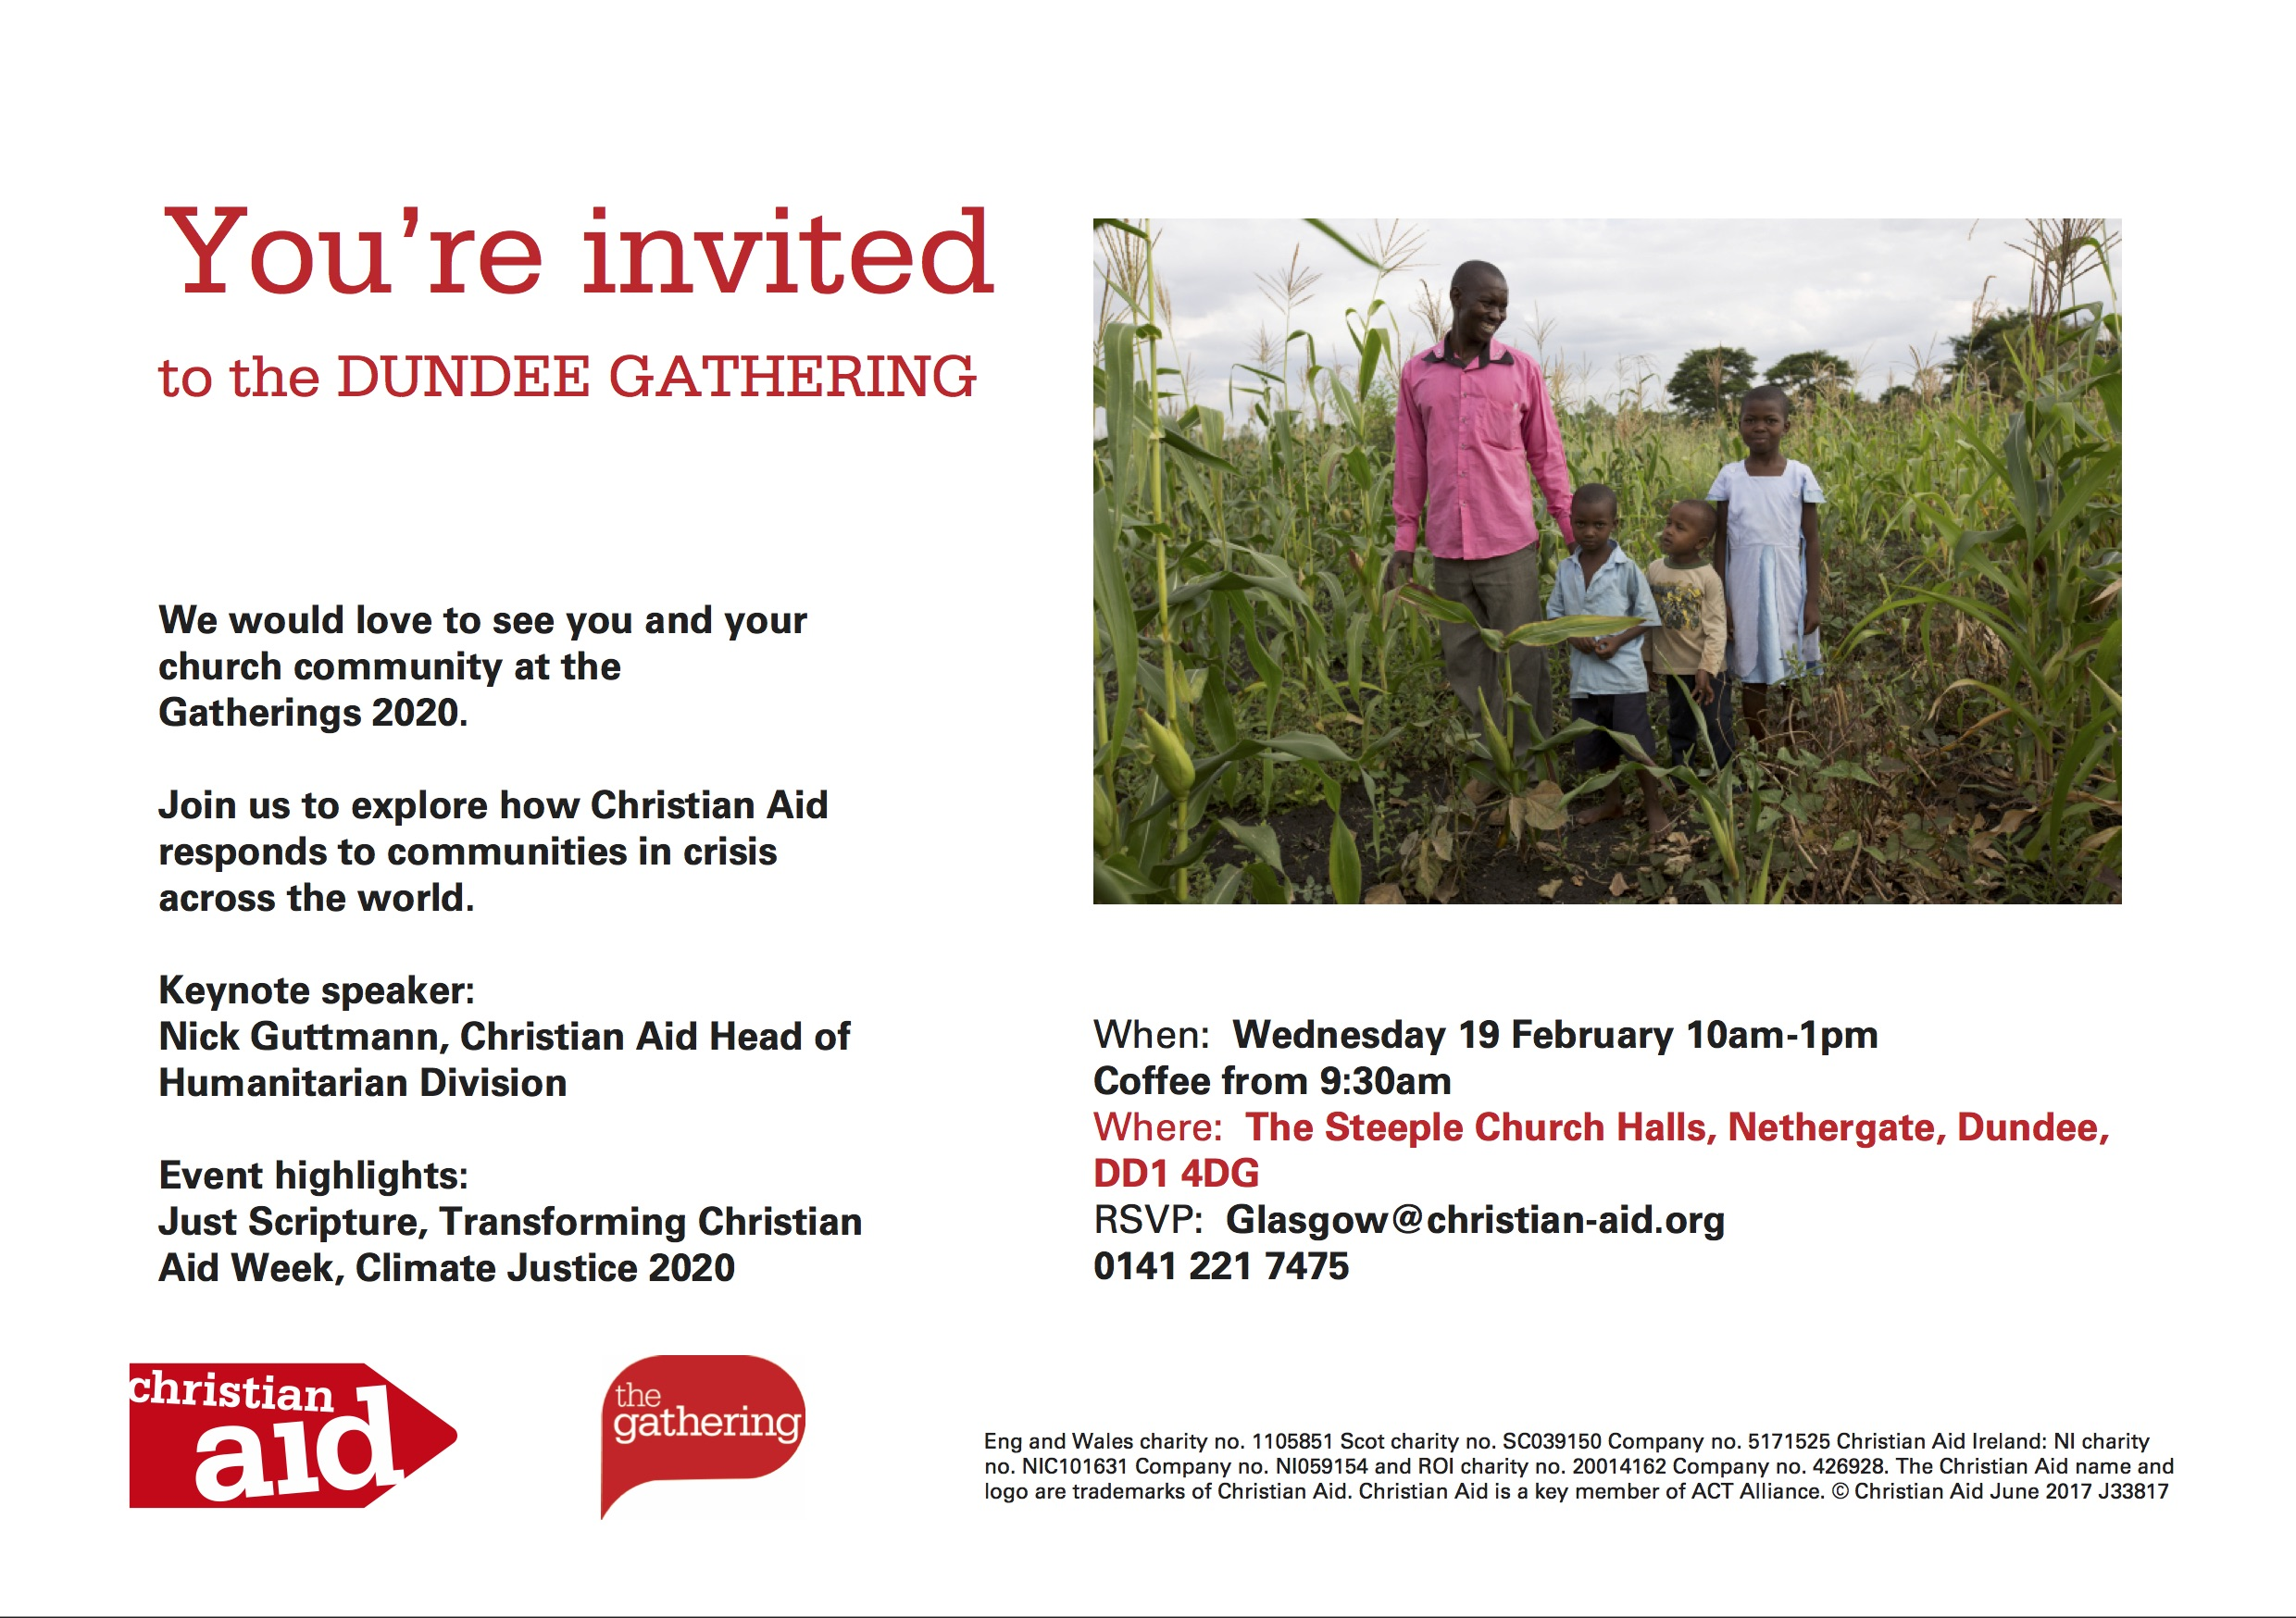 Dundee Christian Aid gathering